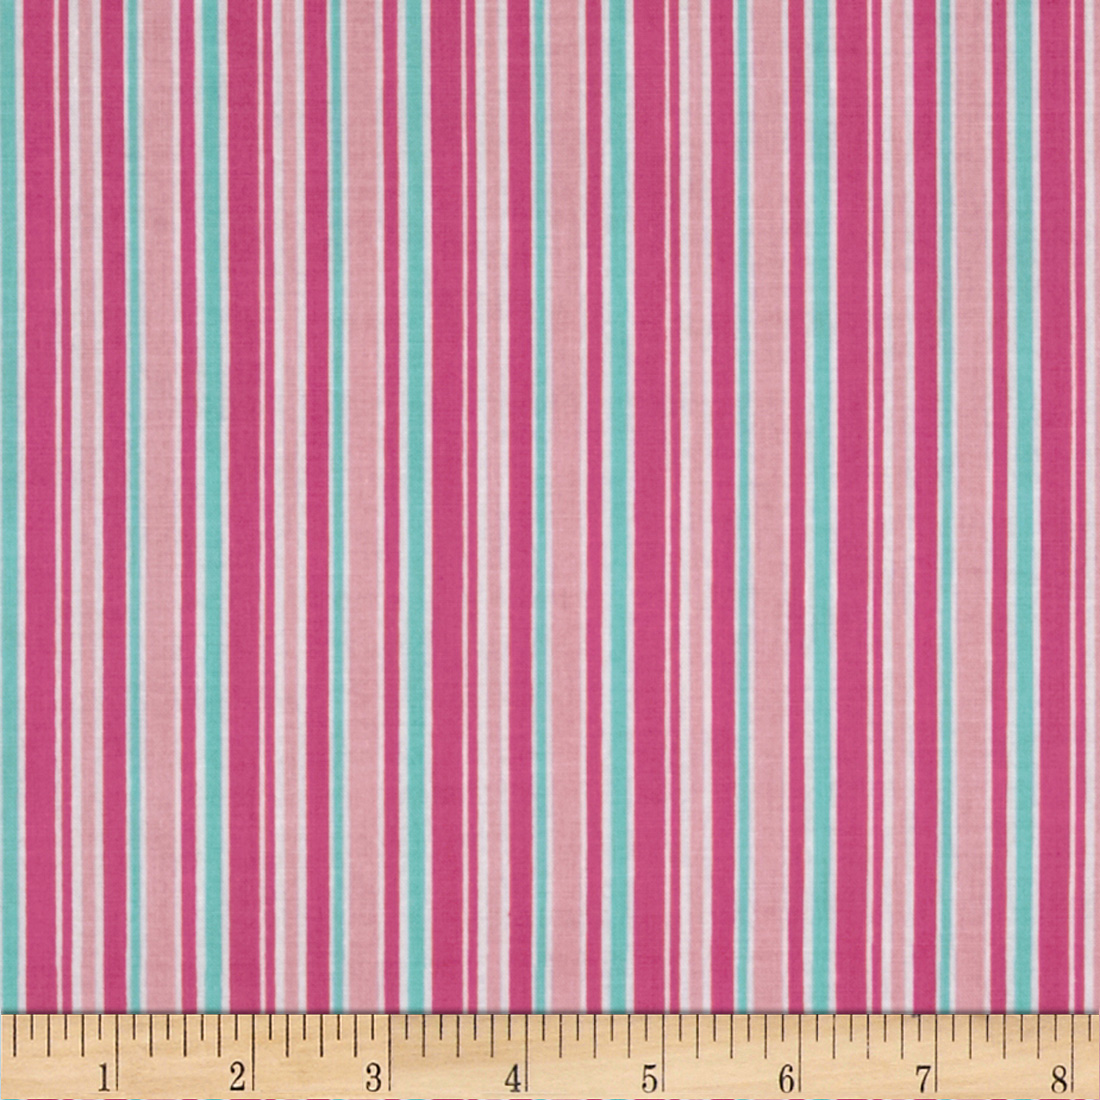 Riley Blake Lovey Dovey Stripes Pink Fabric